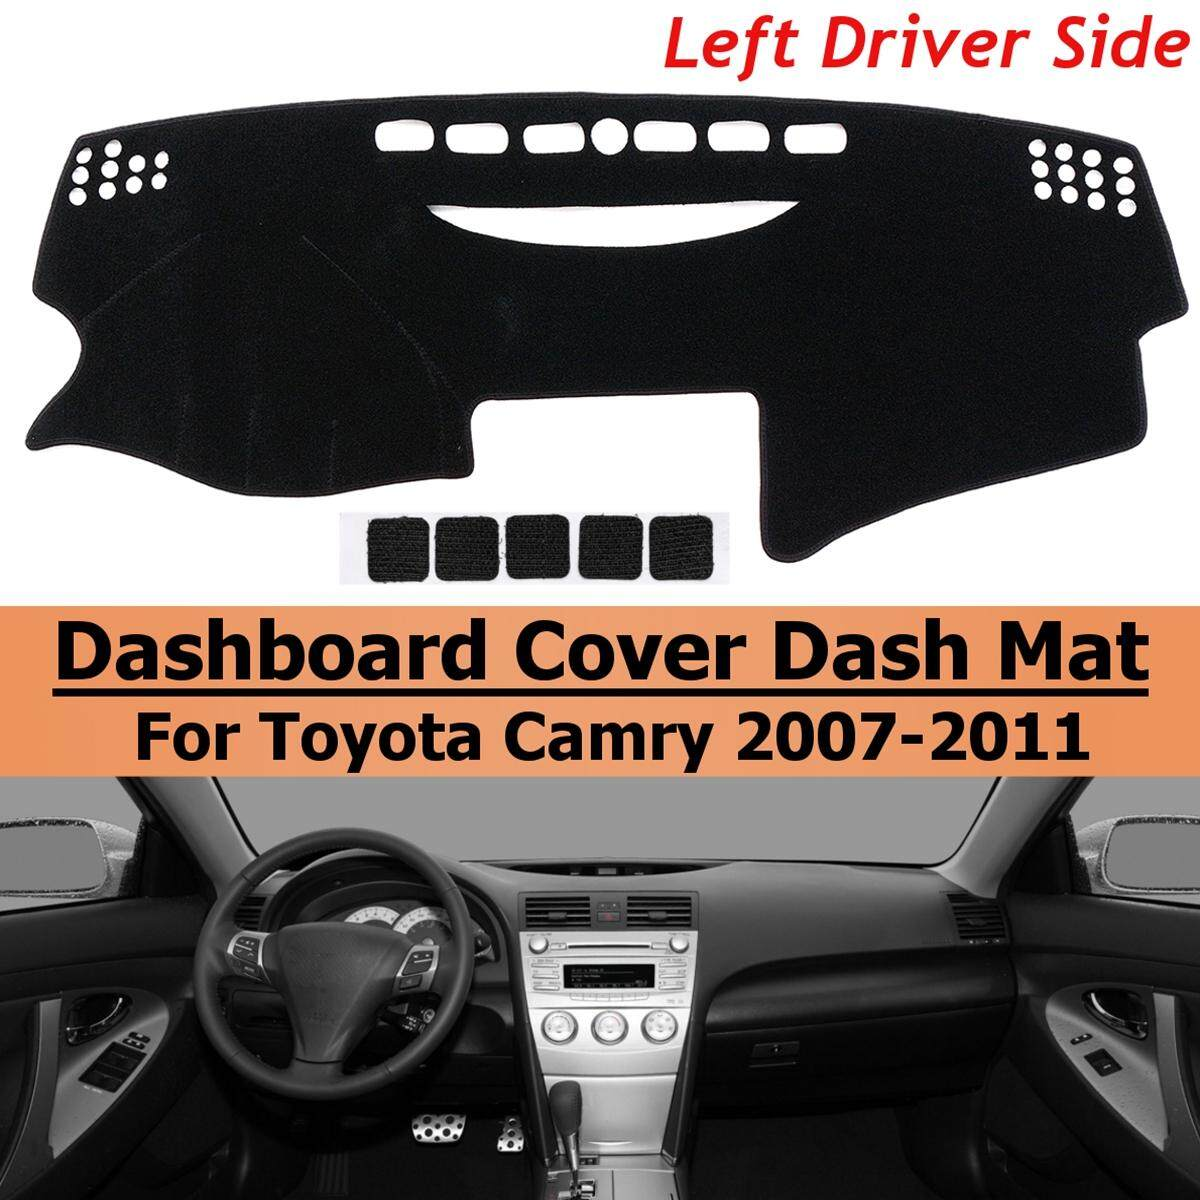 Black Left Hand Dash Cover Dashboard Mat Carpet For To*yo*ta Camry 2007-2011 By Audew.